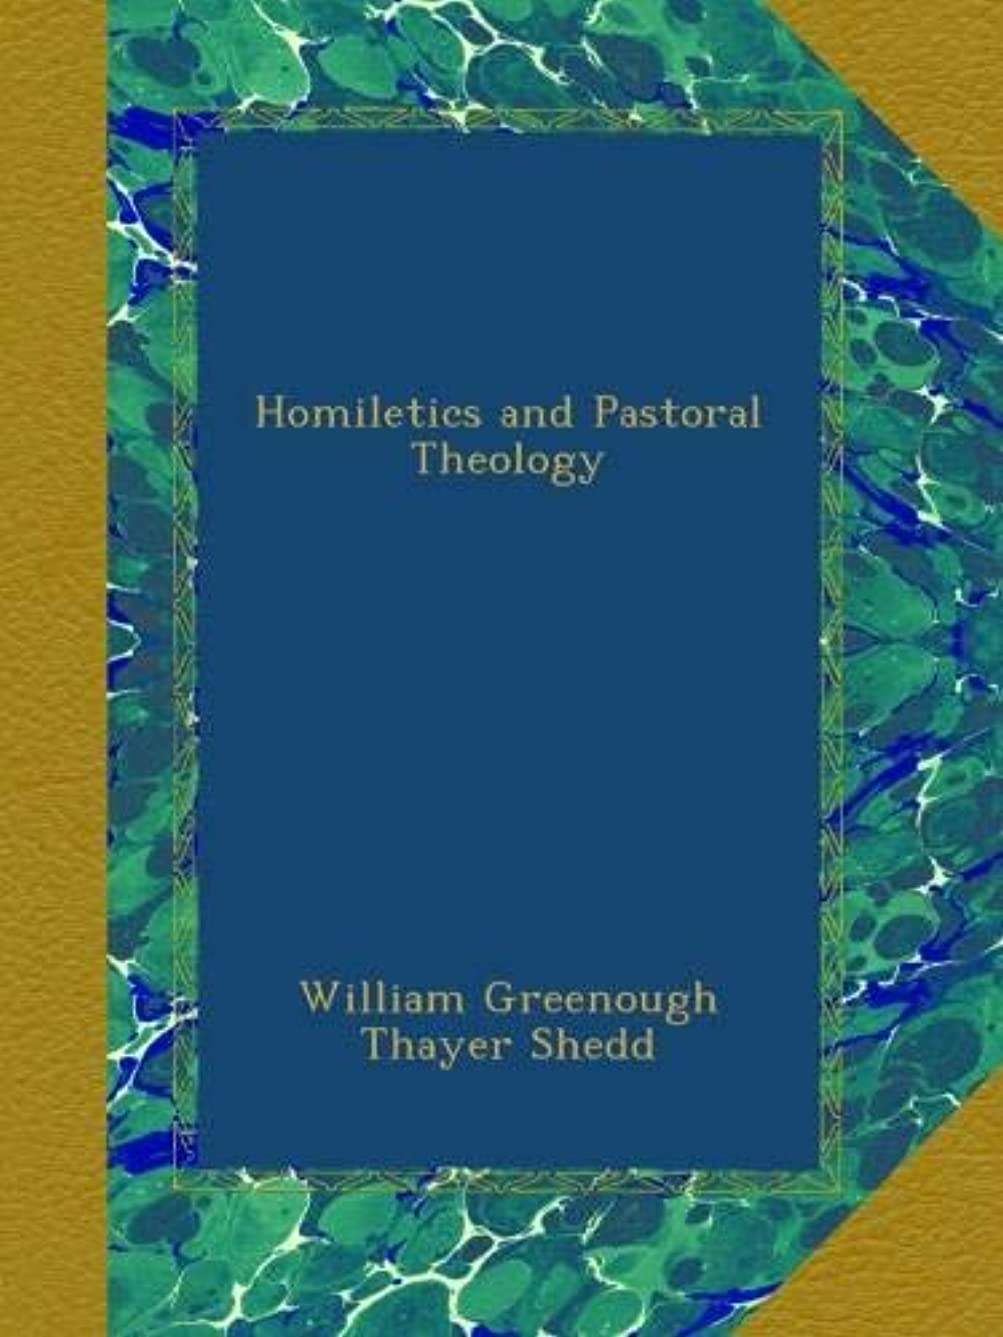 Homiletics and Pastoral Theology